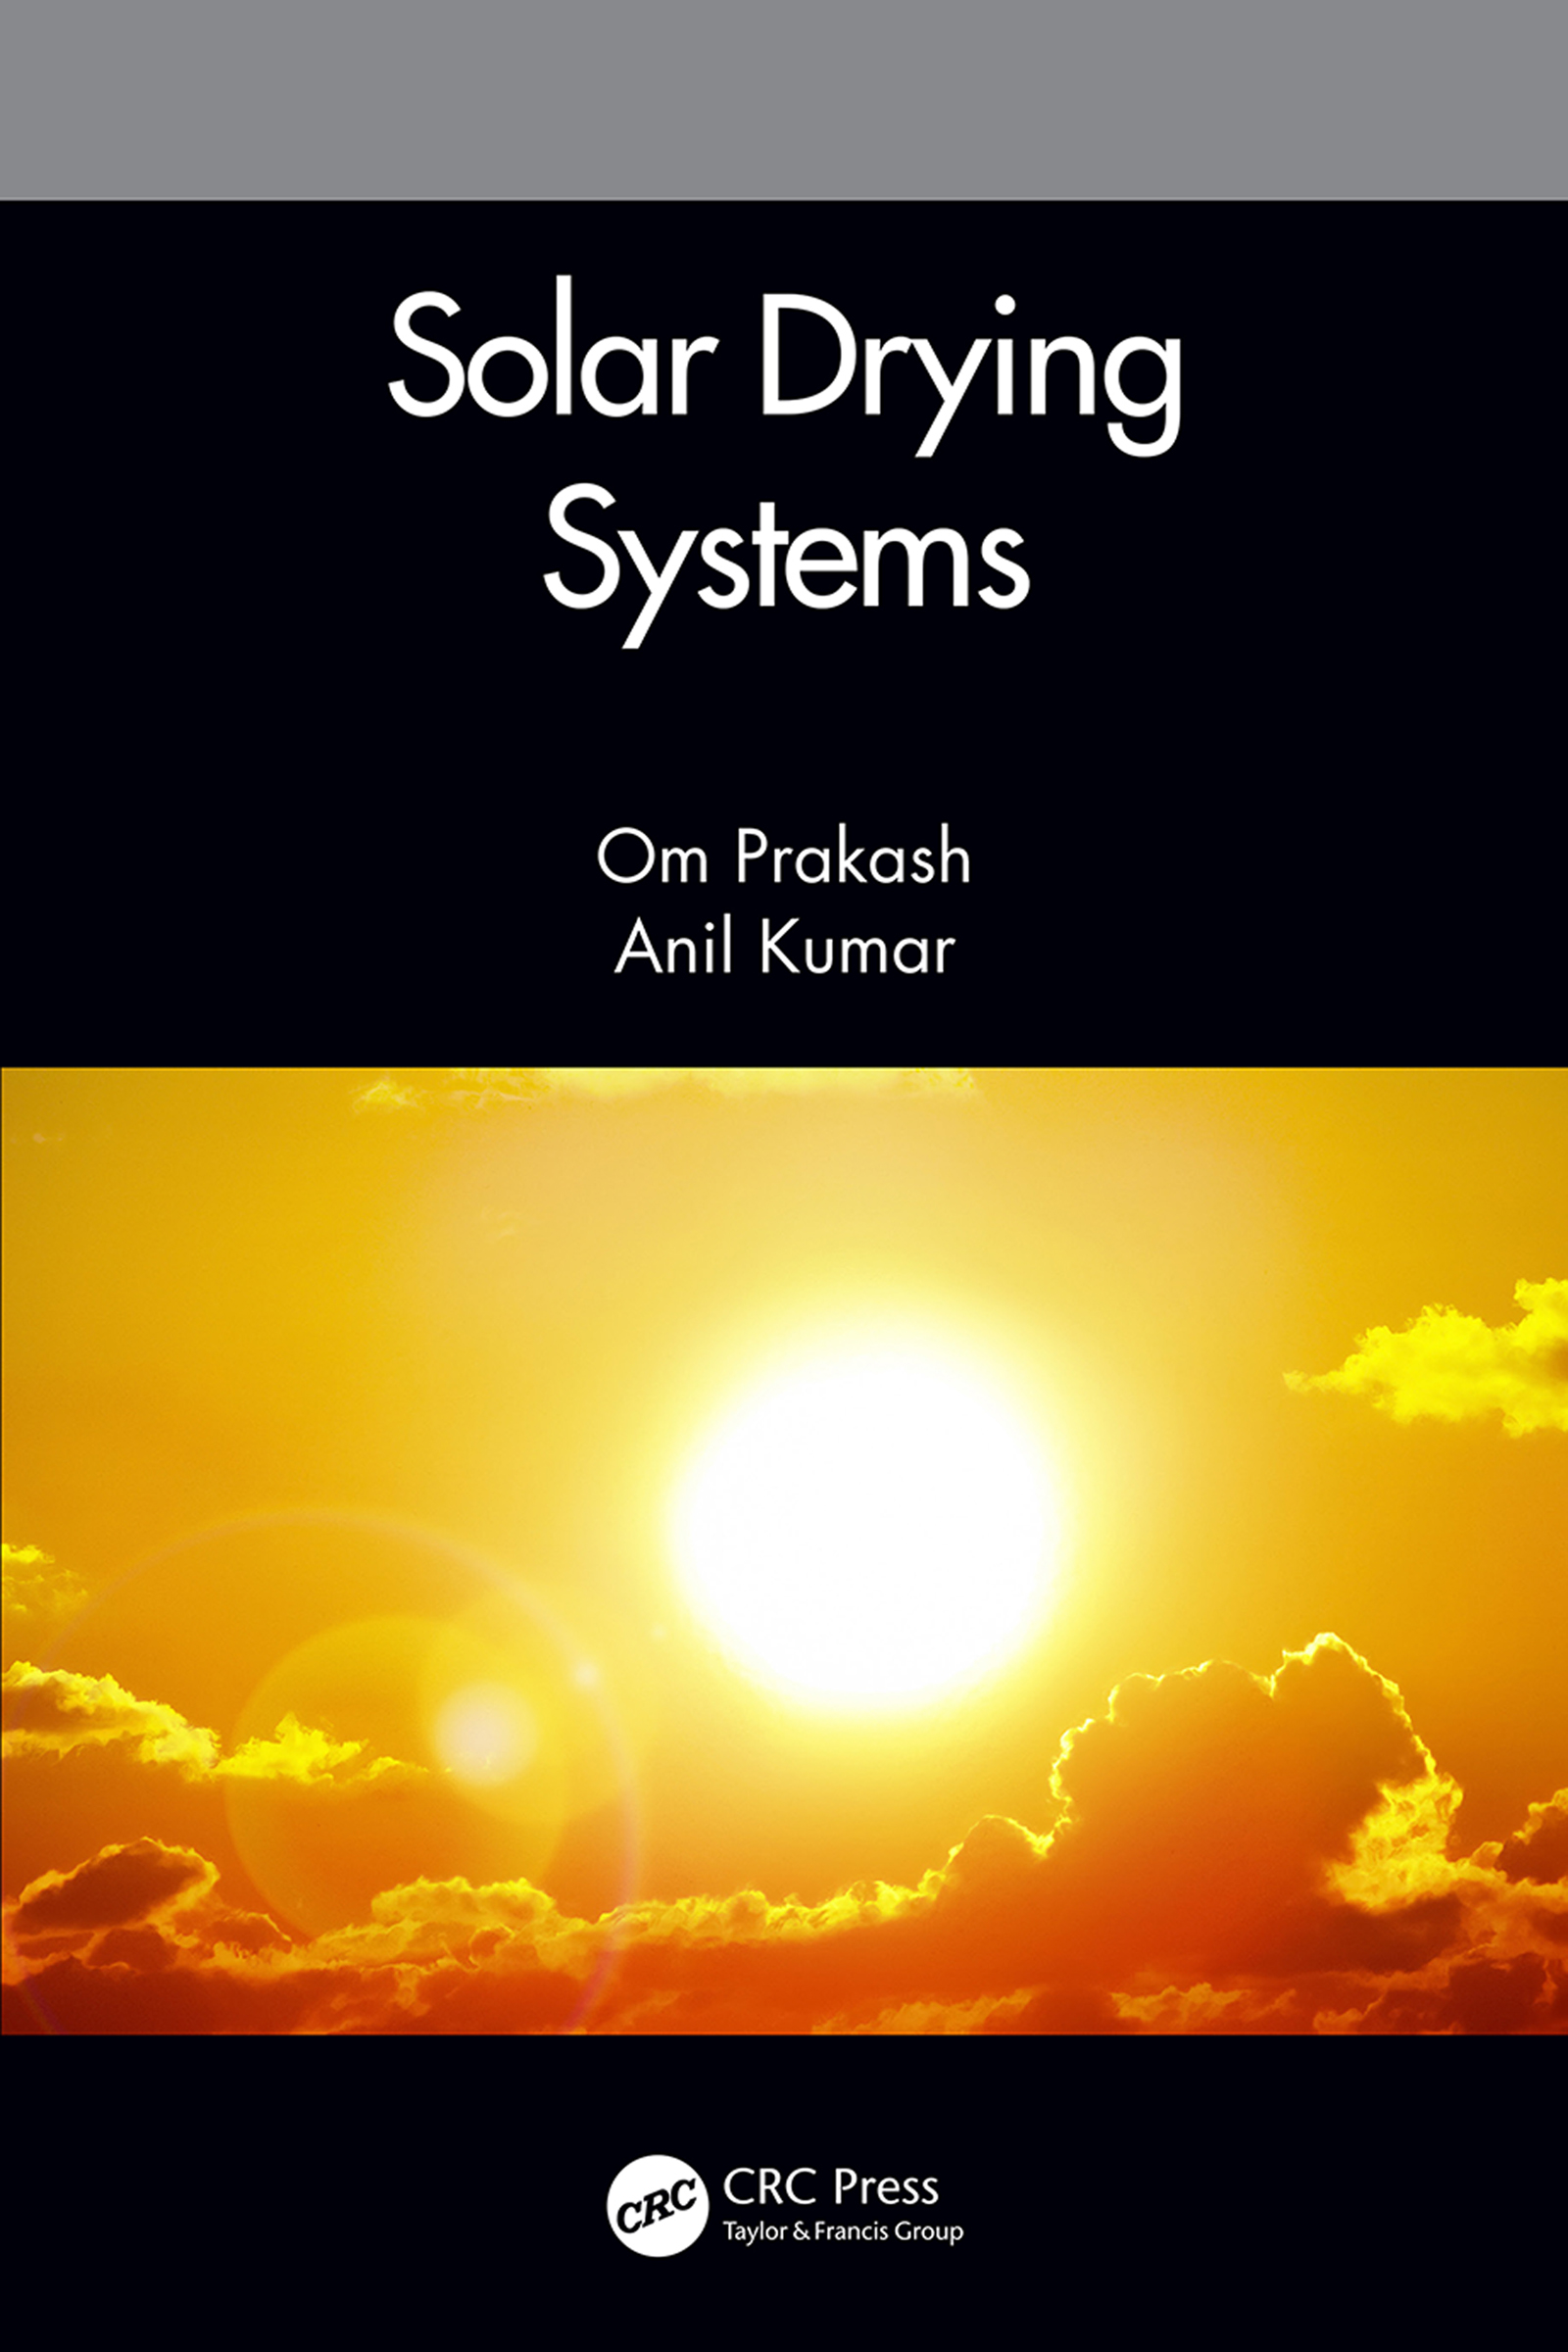 Thermal Modeling of Solar Drying Systems